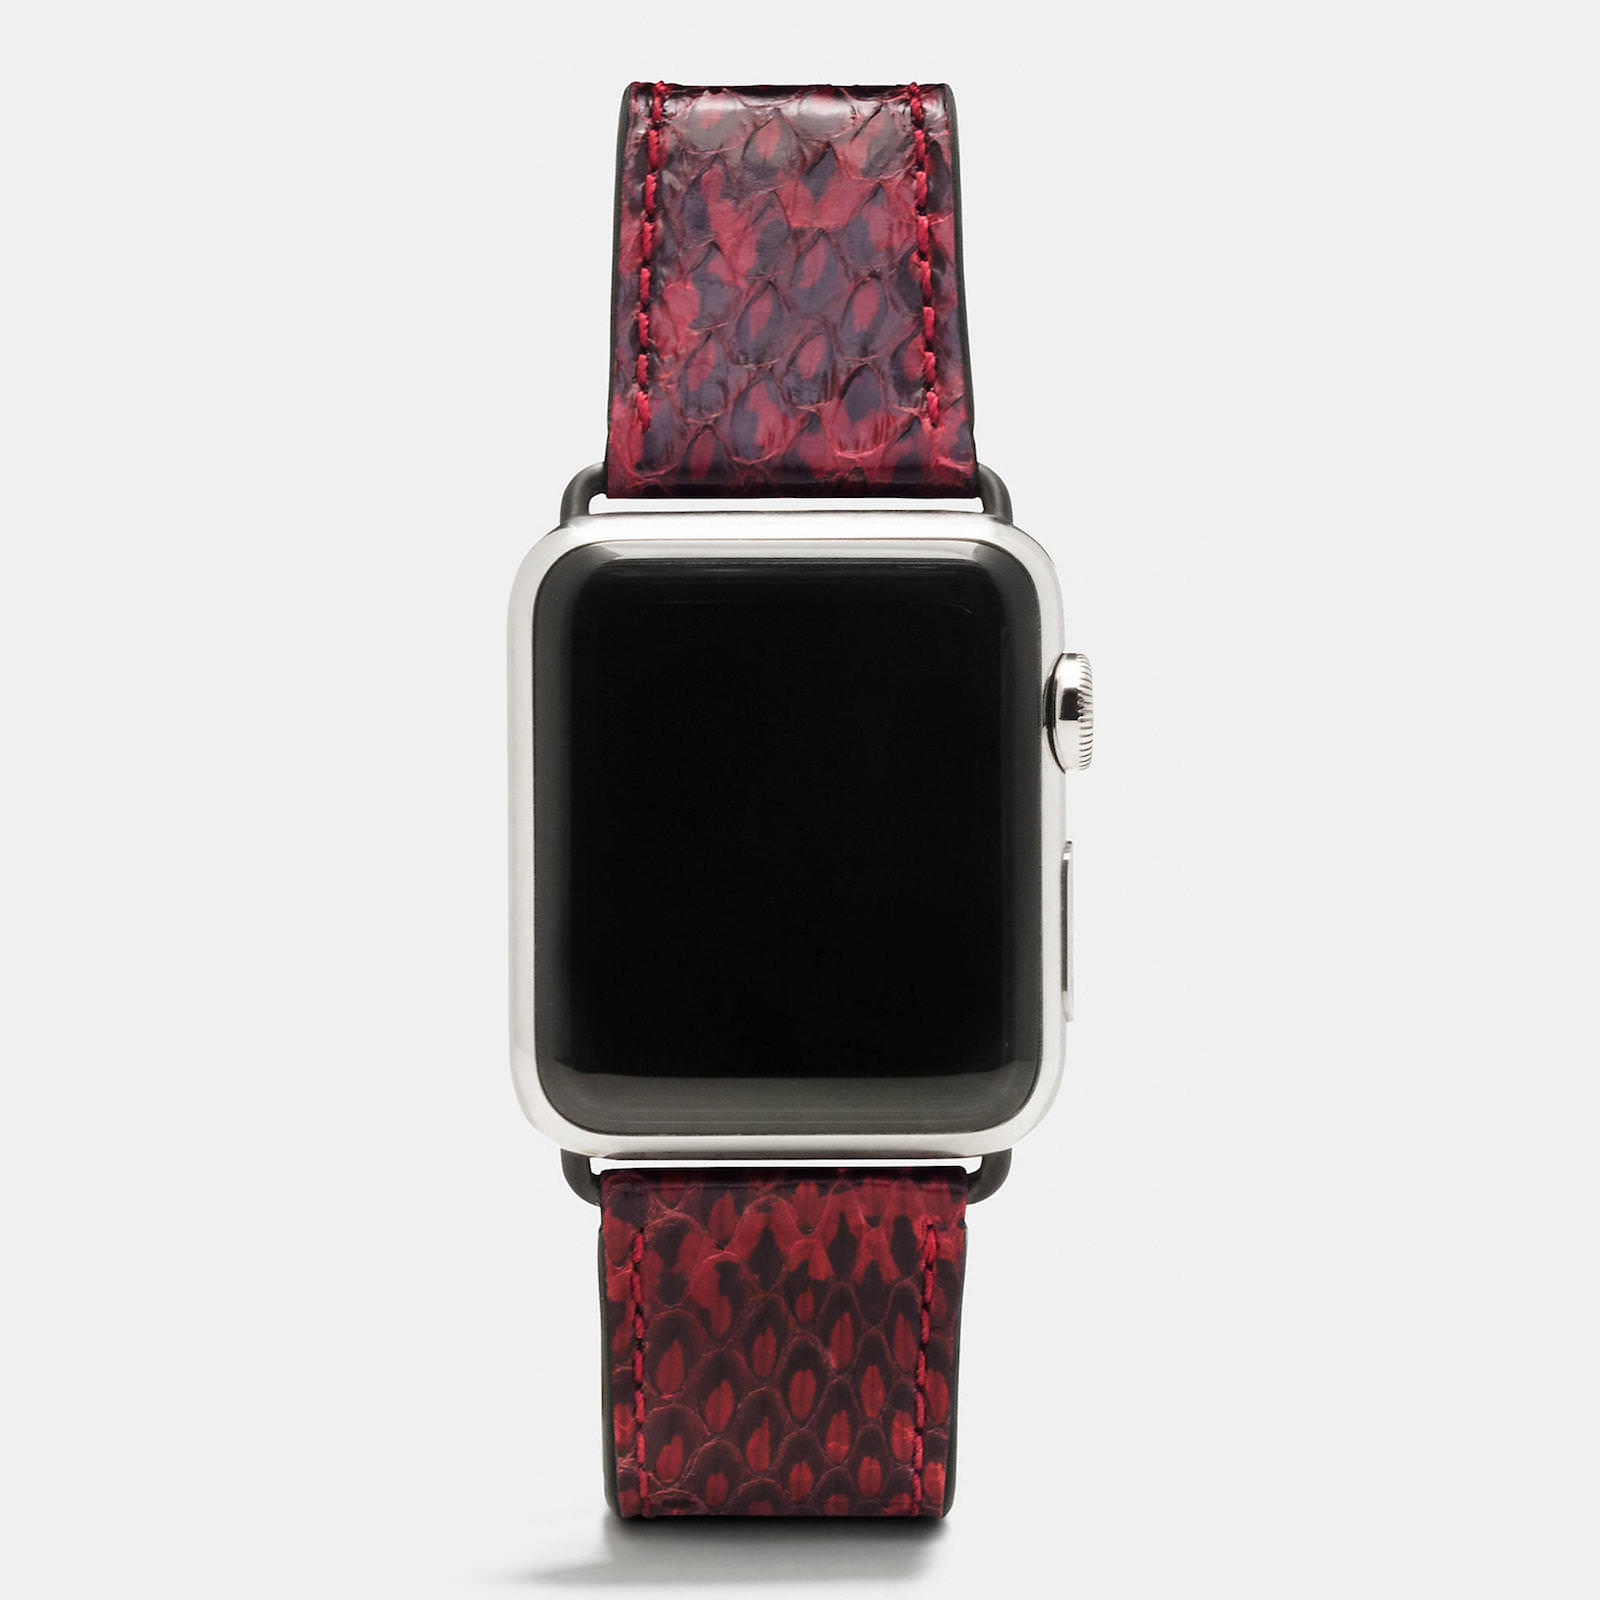 Apple-Watch-Coach-Band-Autumn-Season-4.jpeg